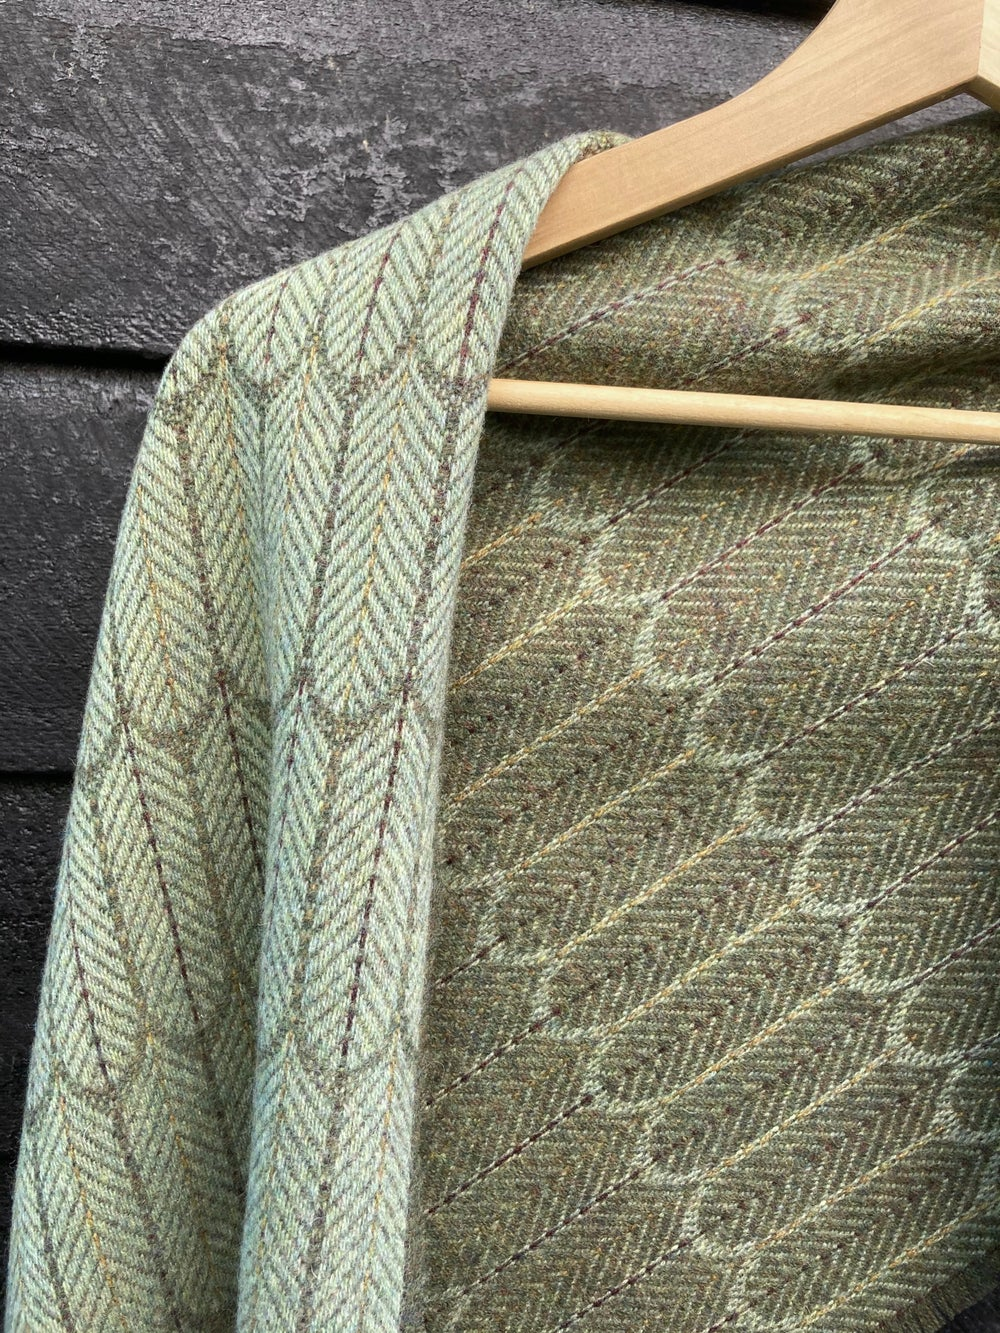 Image of Apple & Moss 'Feathers' shawls